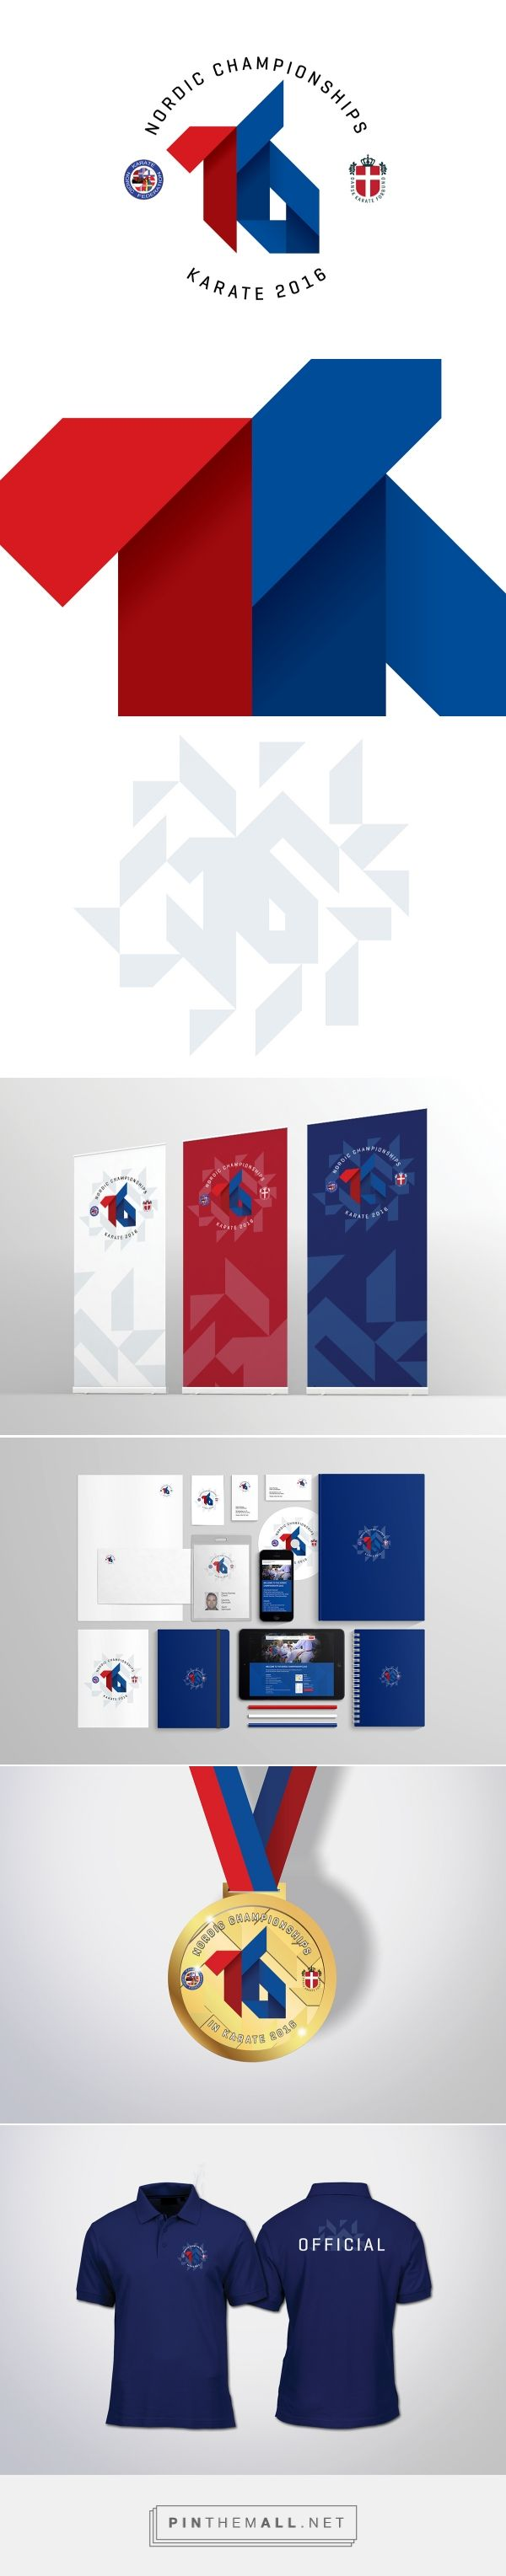 Nordic Championships Karate 2016, visual identity on Behance